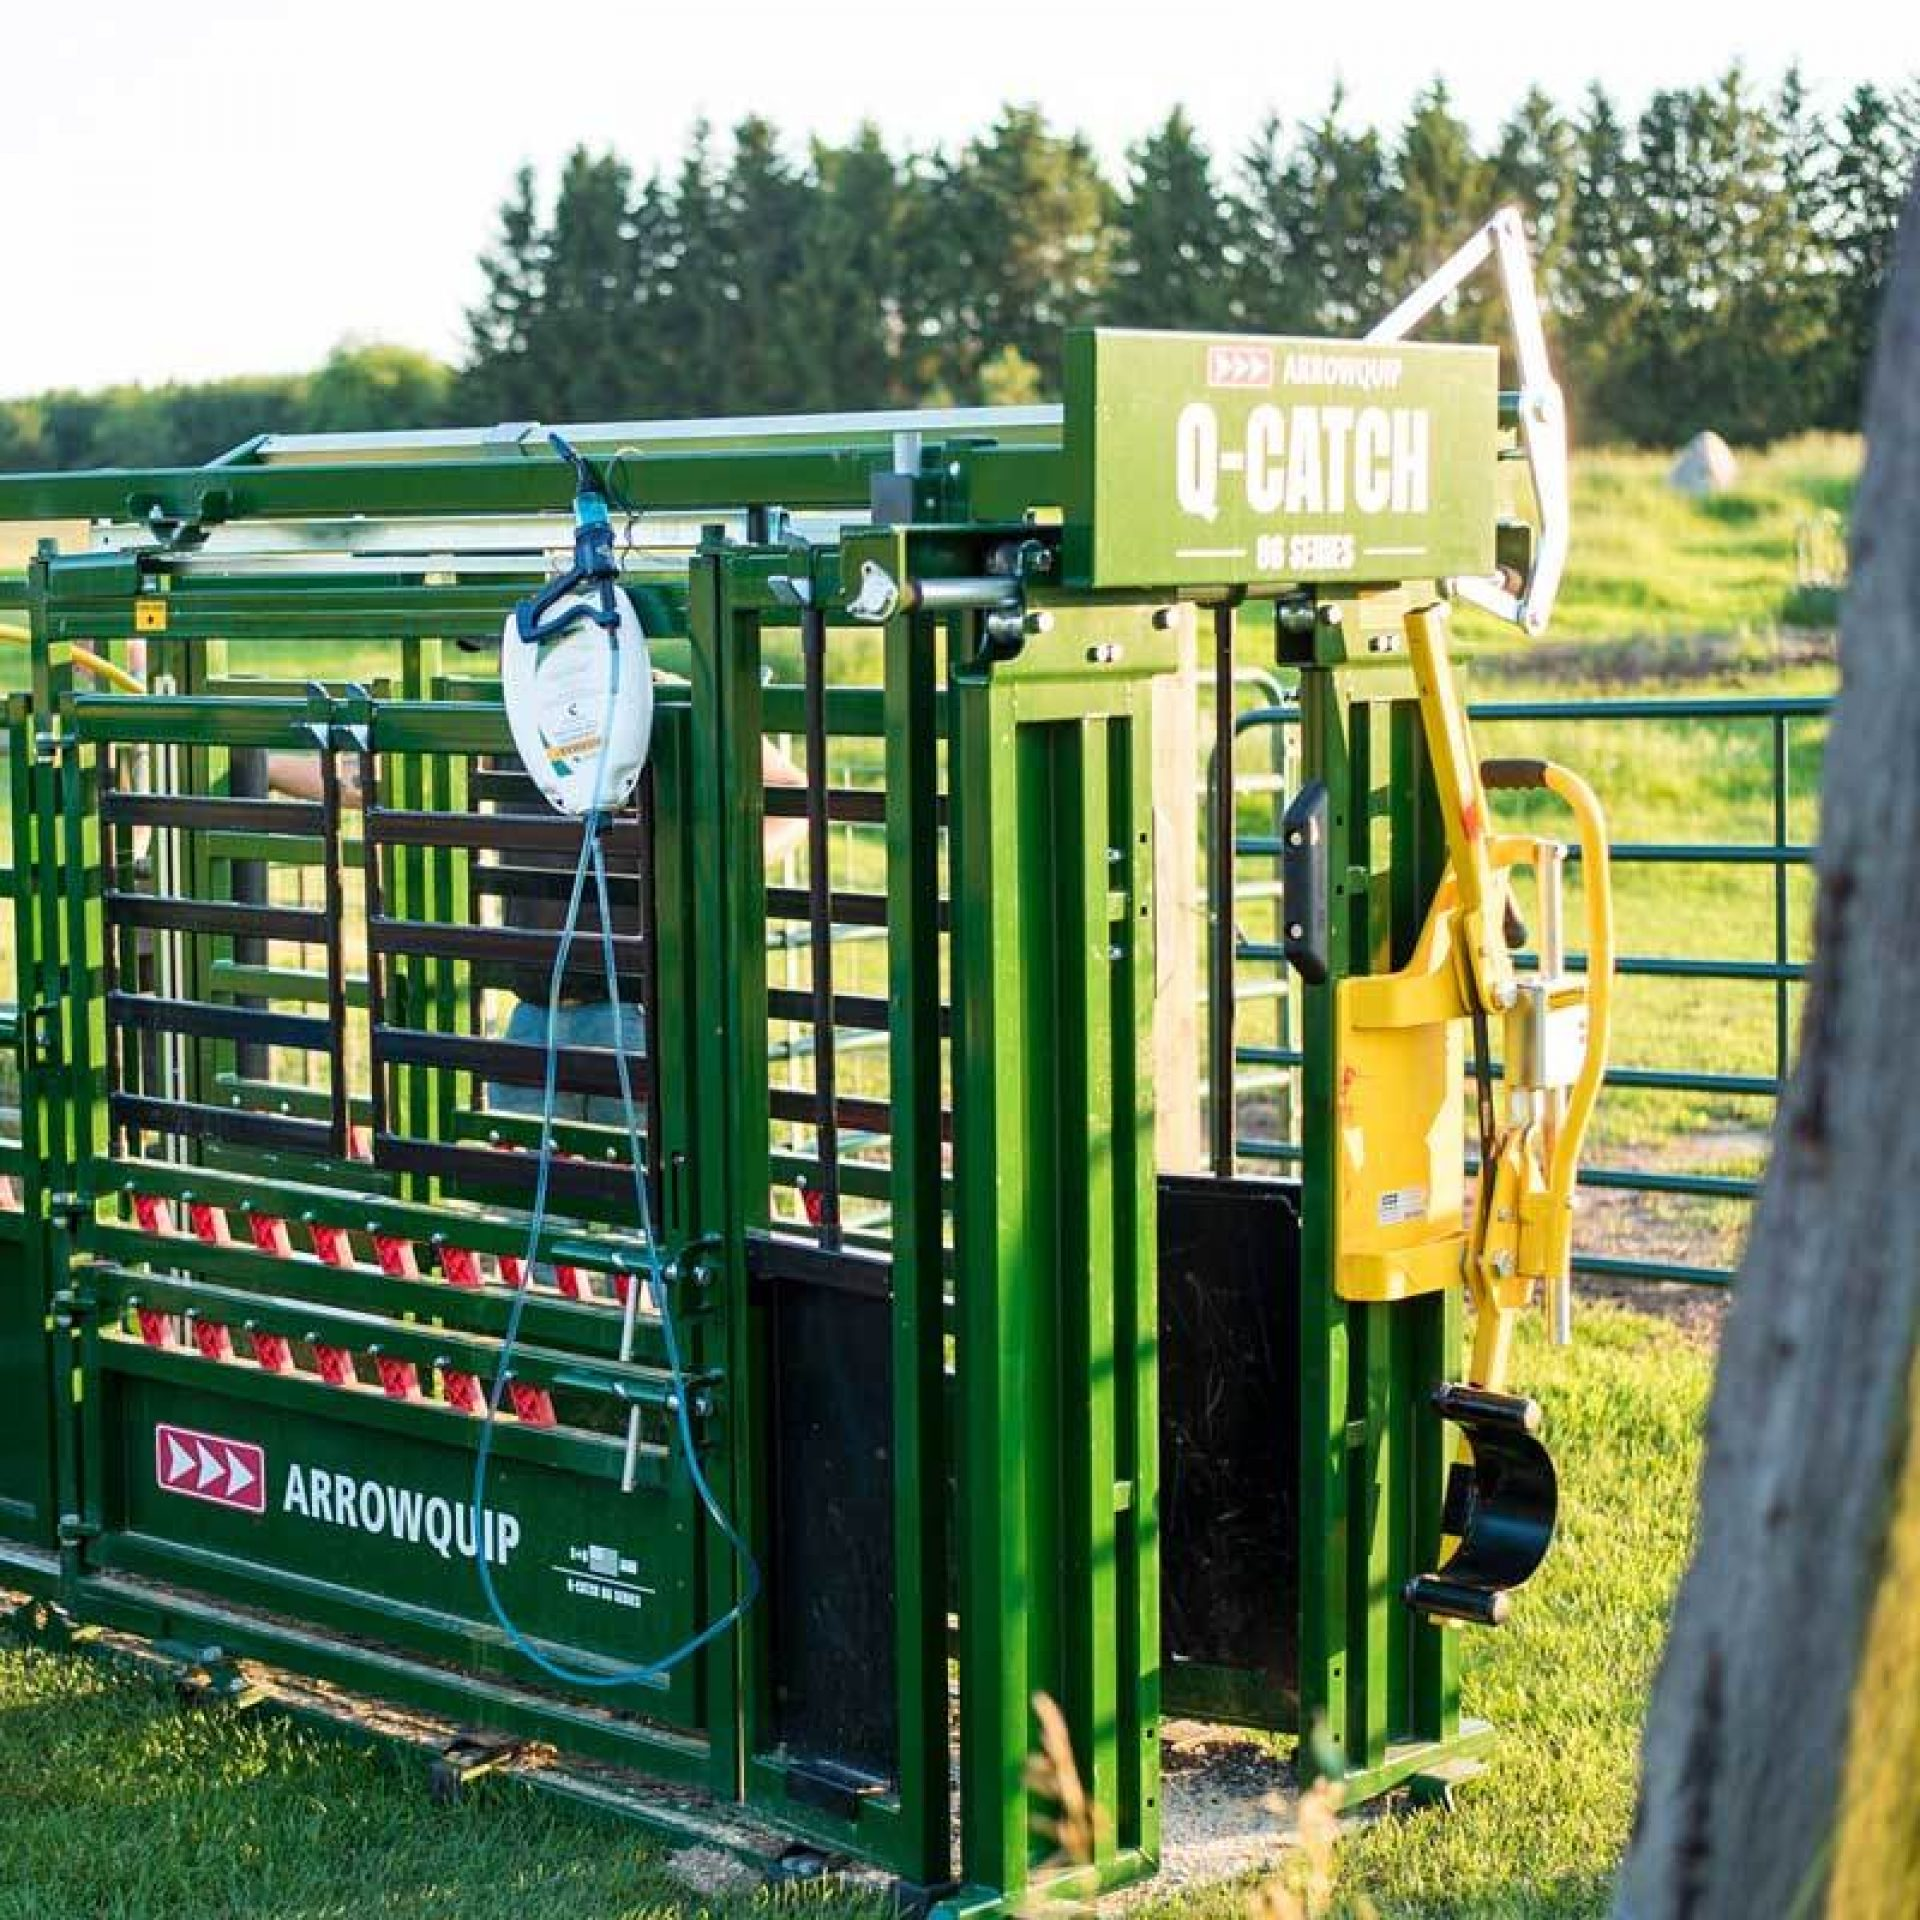 Q-Catch Cattle Chute with Head Holder